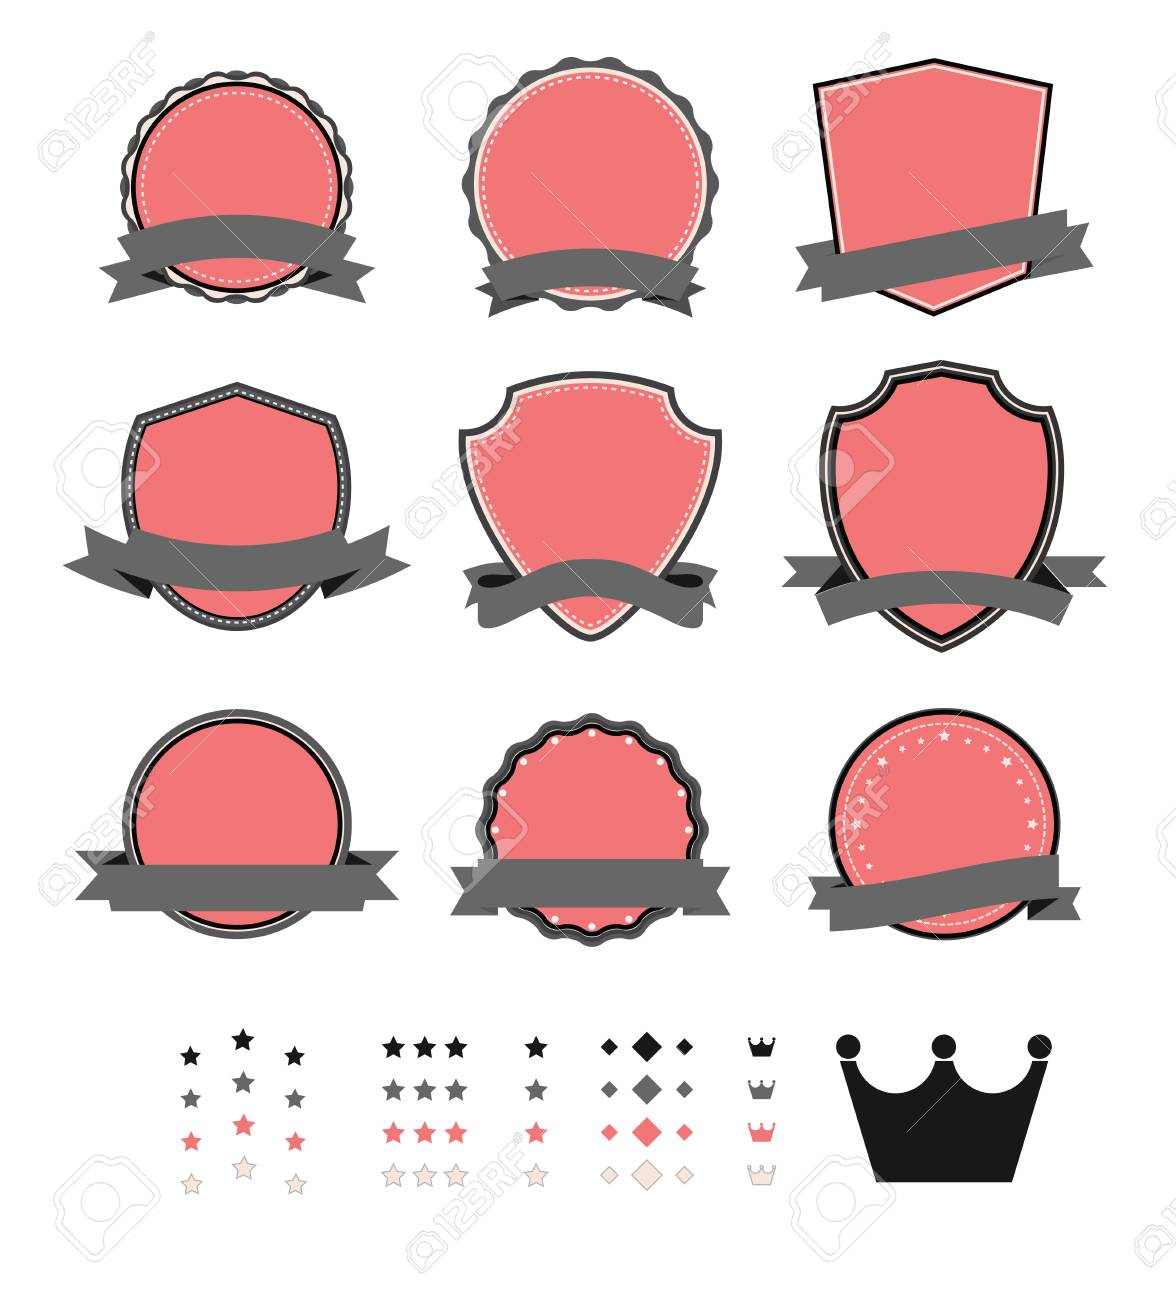 vintage blank label template royalty free cliparts, vectors, and